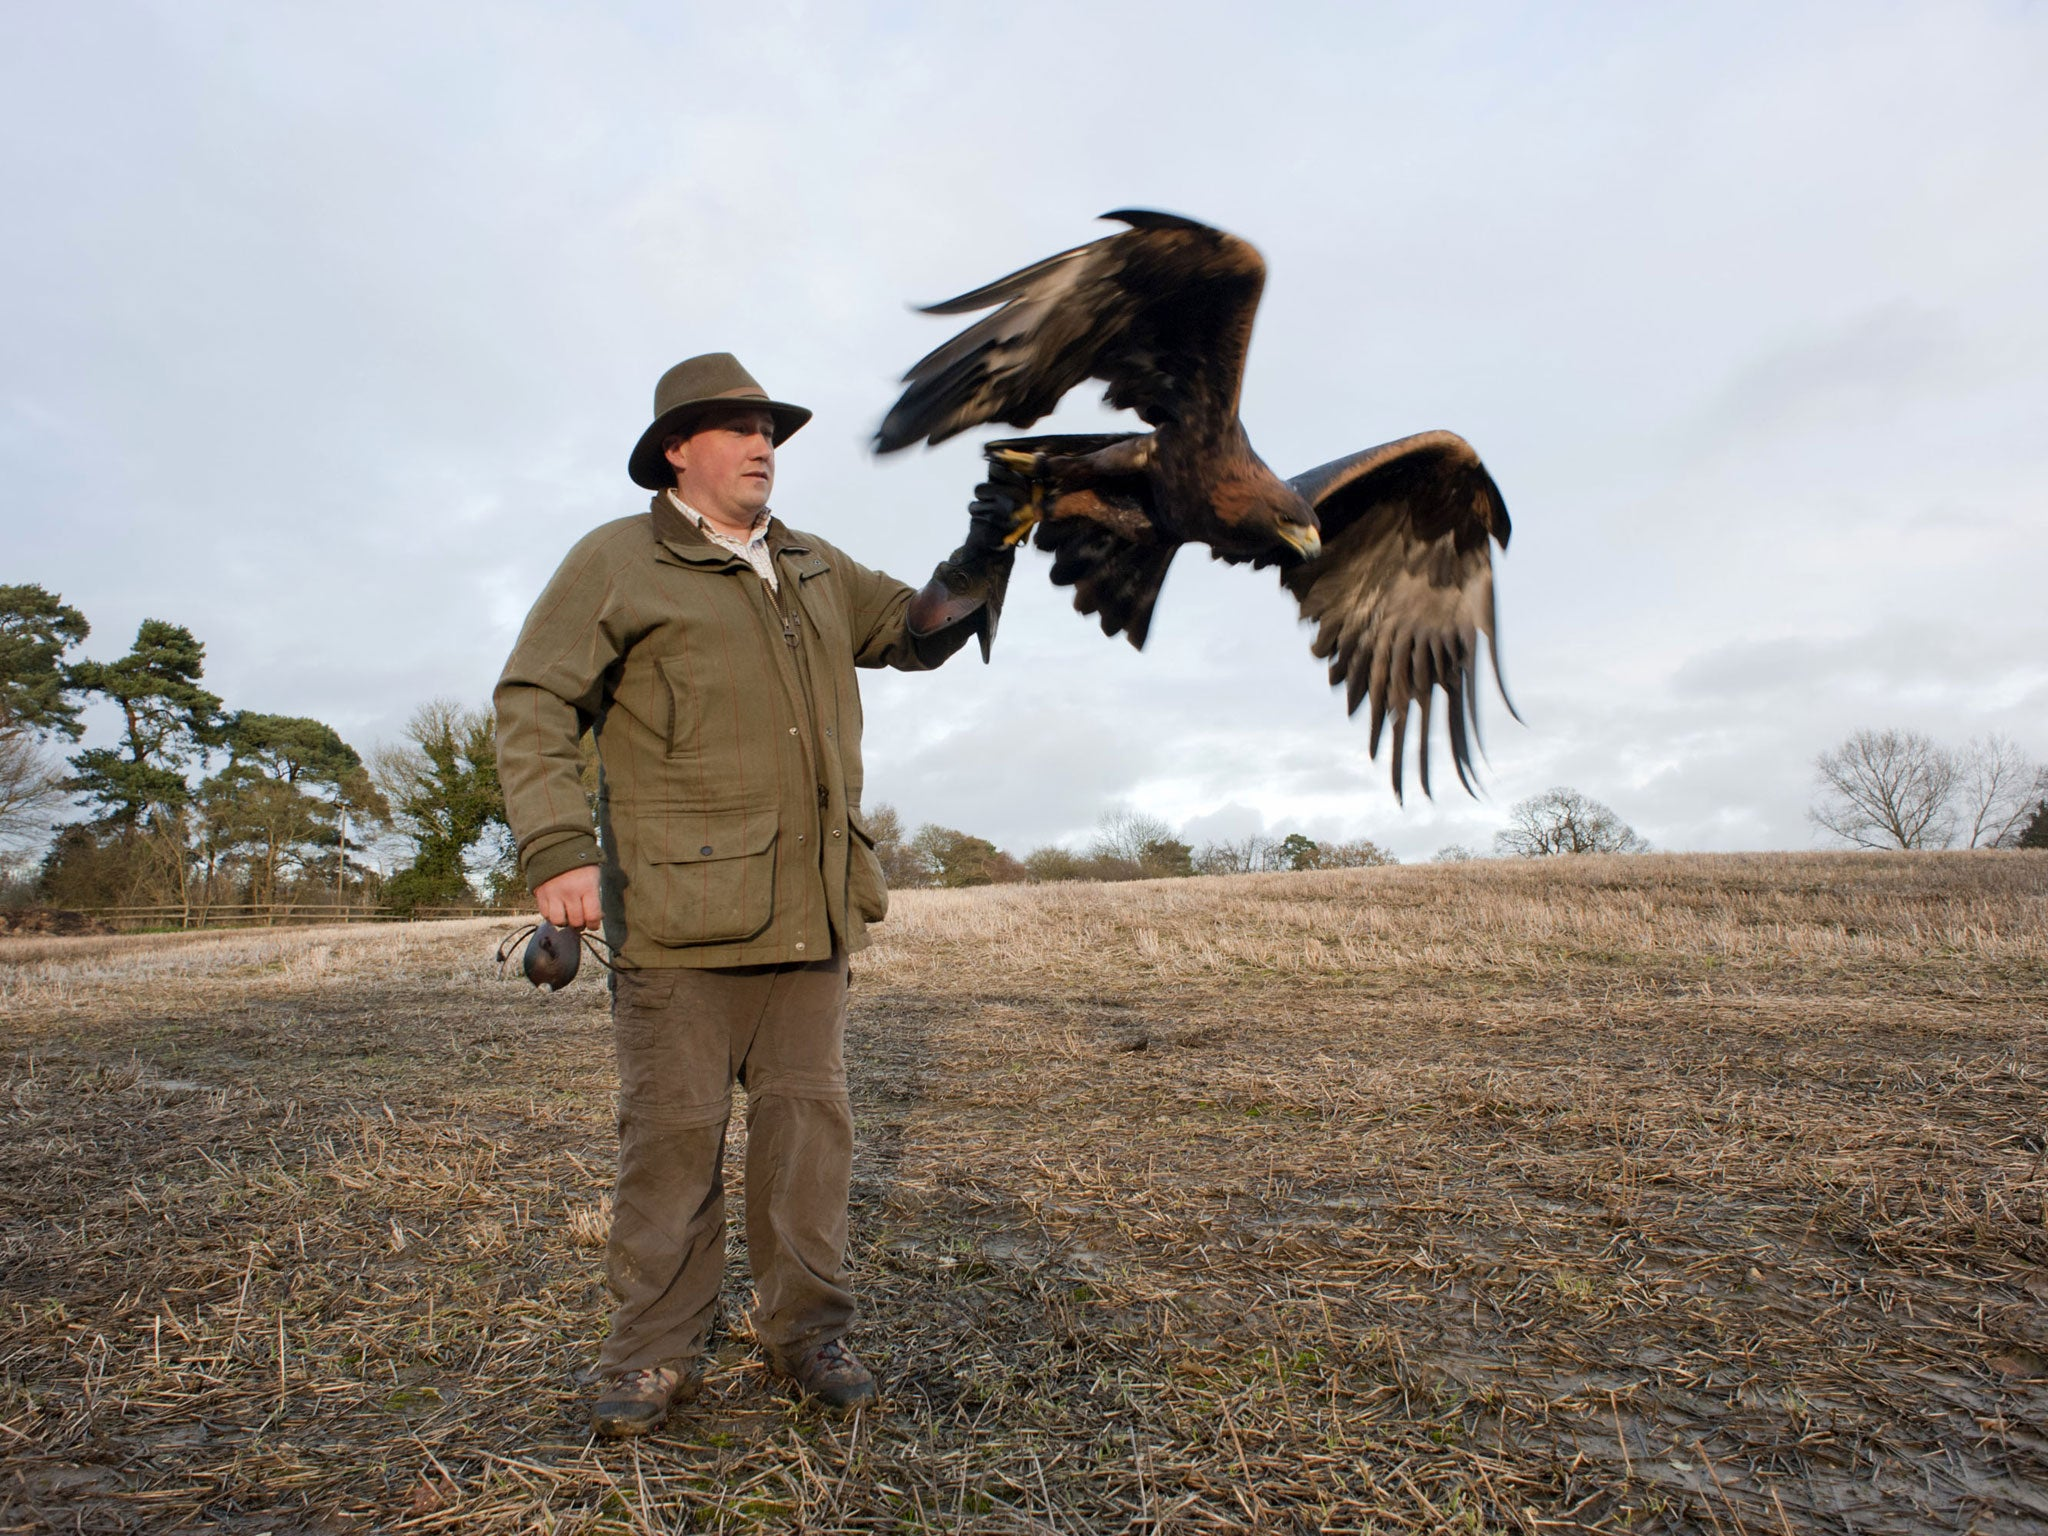 Come fly with me: Britain's passion for birds of prey | The Independent